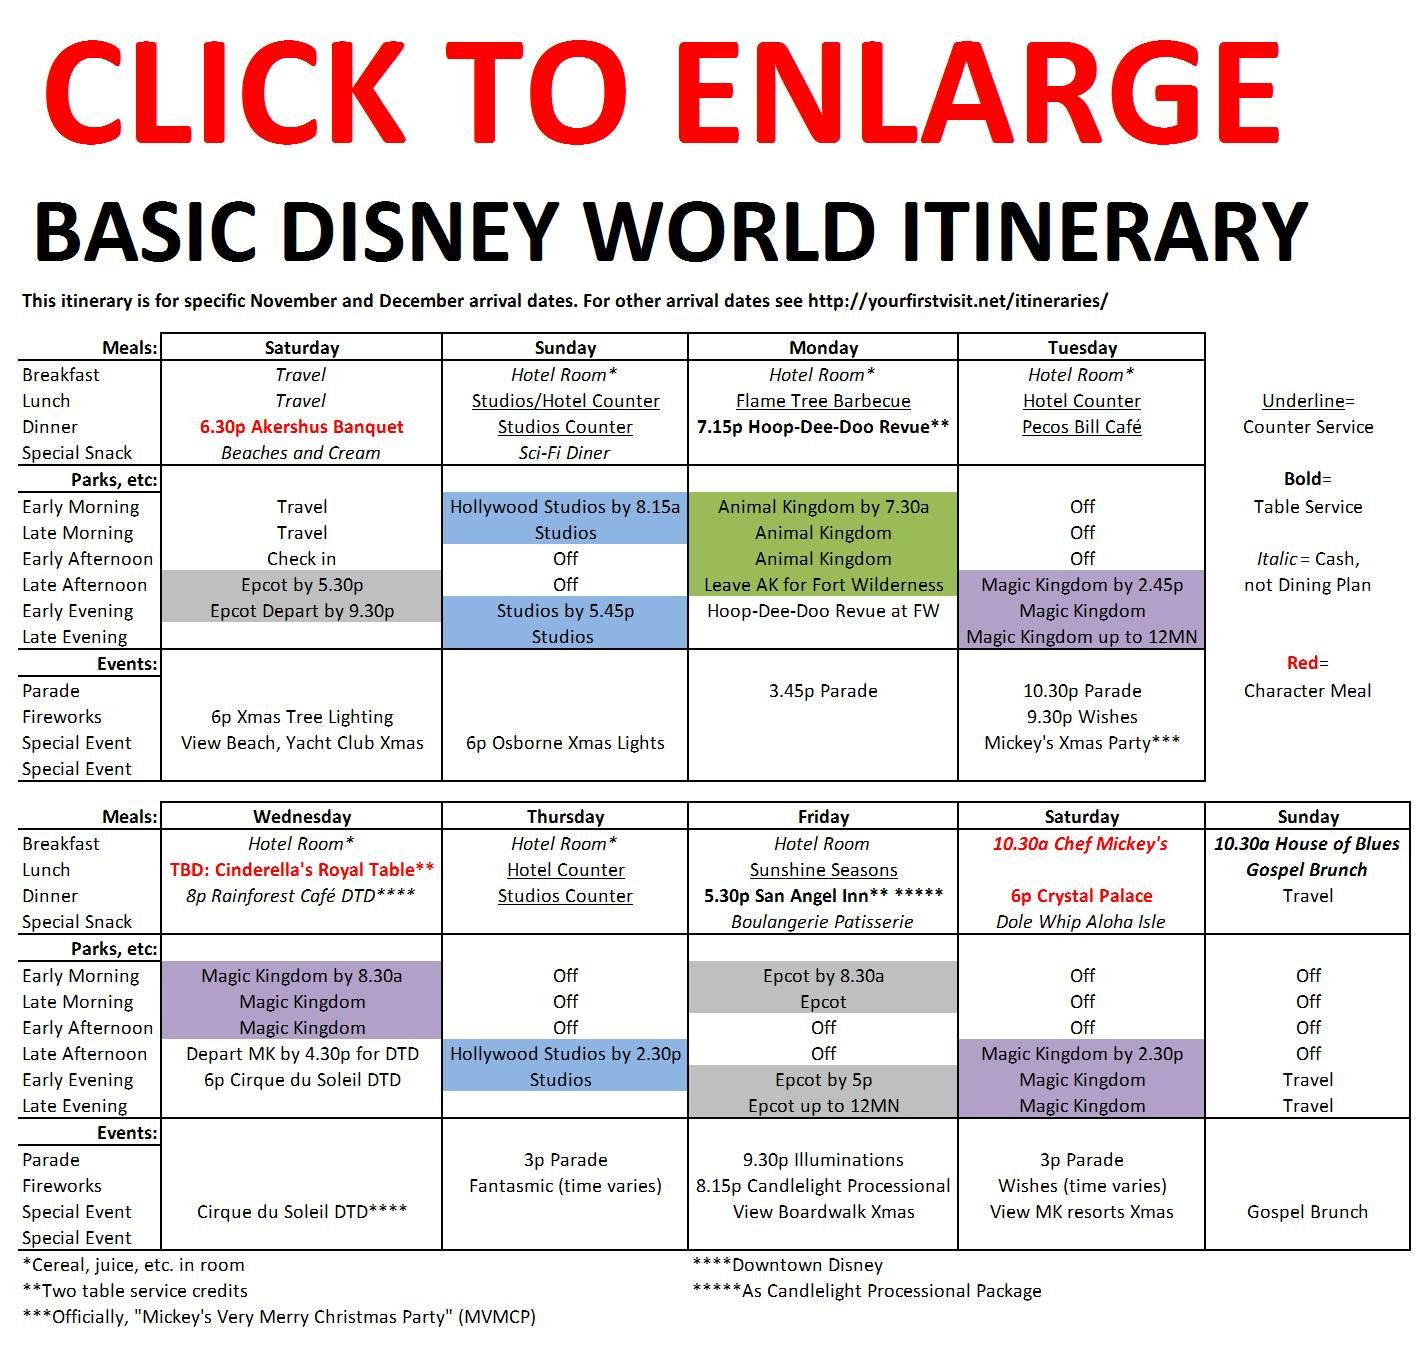 Basic 2018 December Disney World Itinerary | Travel with ...